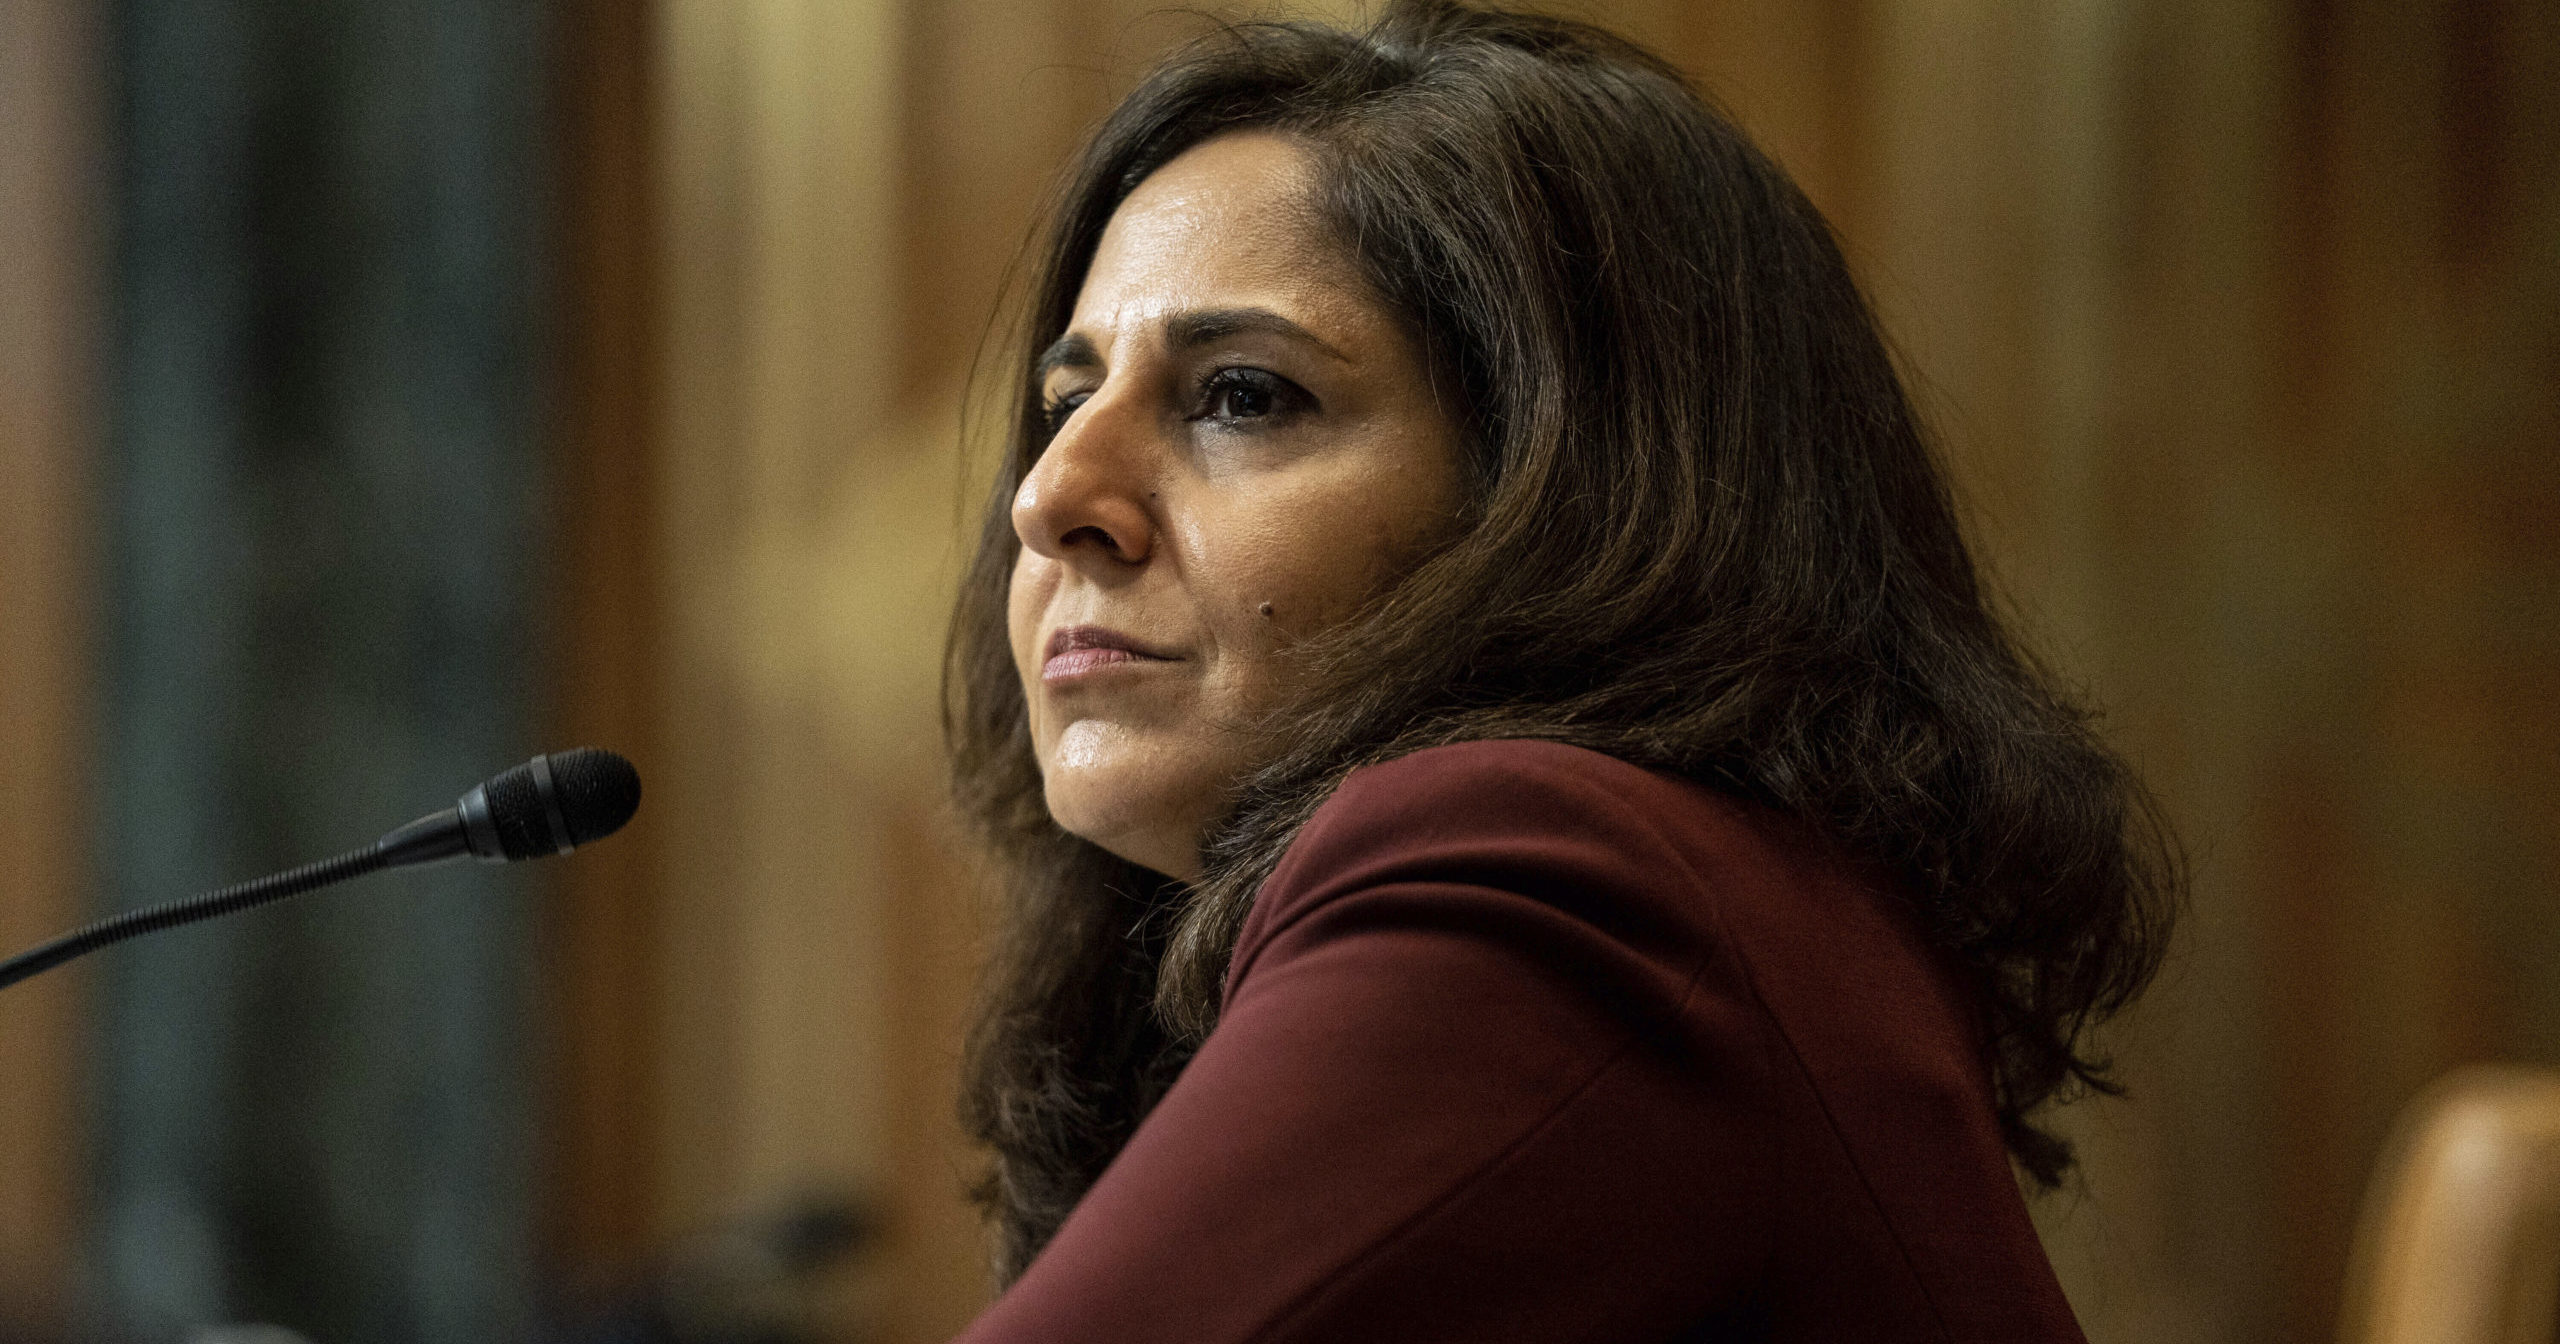 Neera Tanden, President Joe Biden's nominee for director of the Office of Management and Budget, appears before a Senate Budget Committee hearing on Capitol Hill in Washington, D.C, on Feb. 10, 2021.